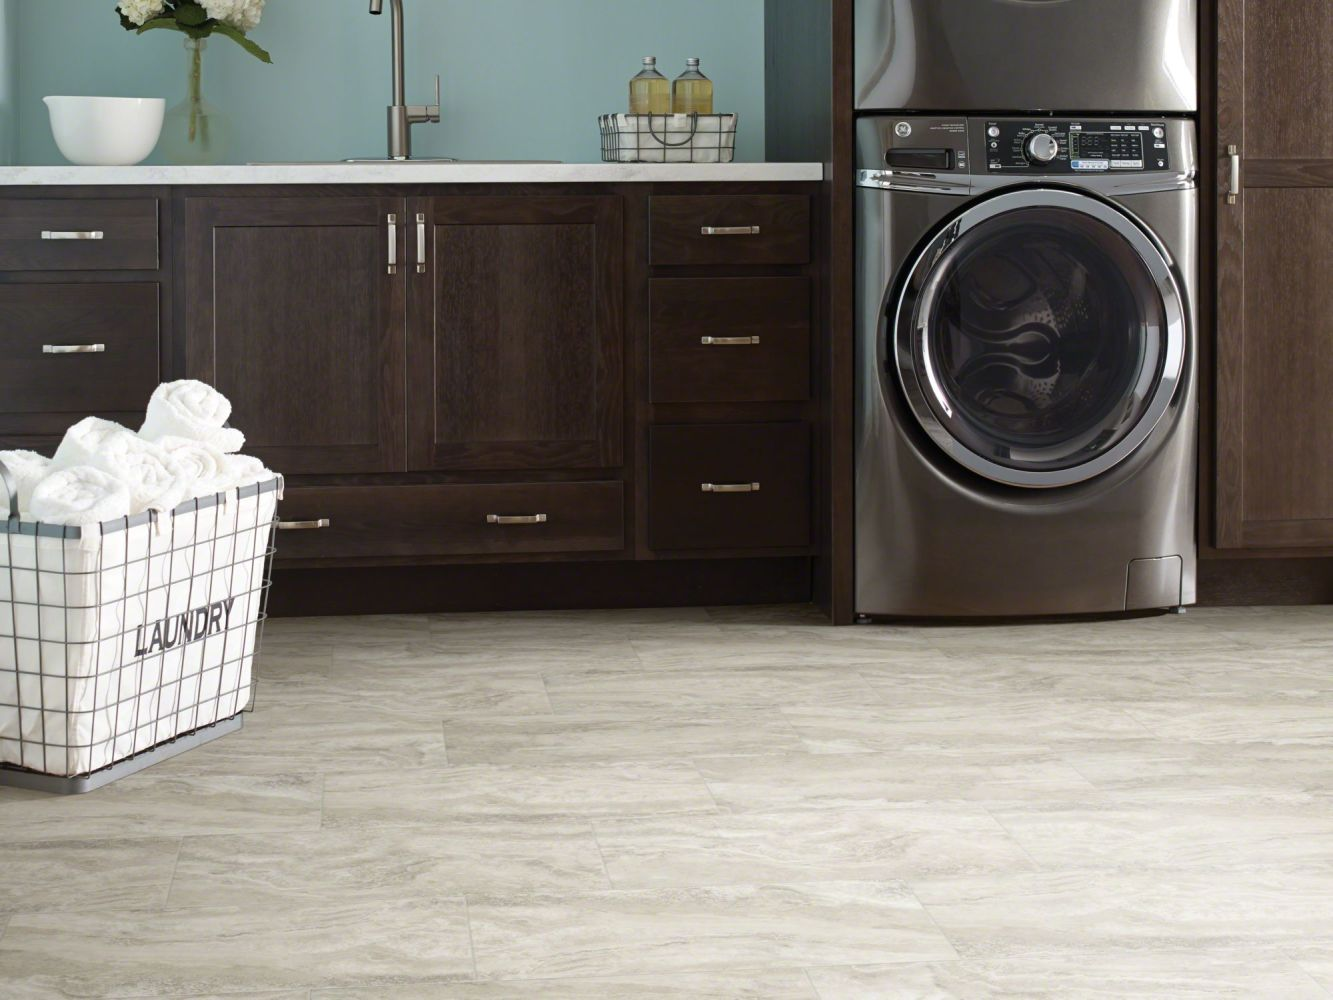 Shaw Floors Vinyl Residential Journey Tile Lanai 00557_0494V